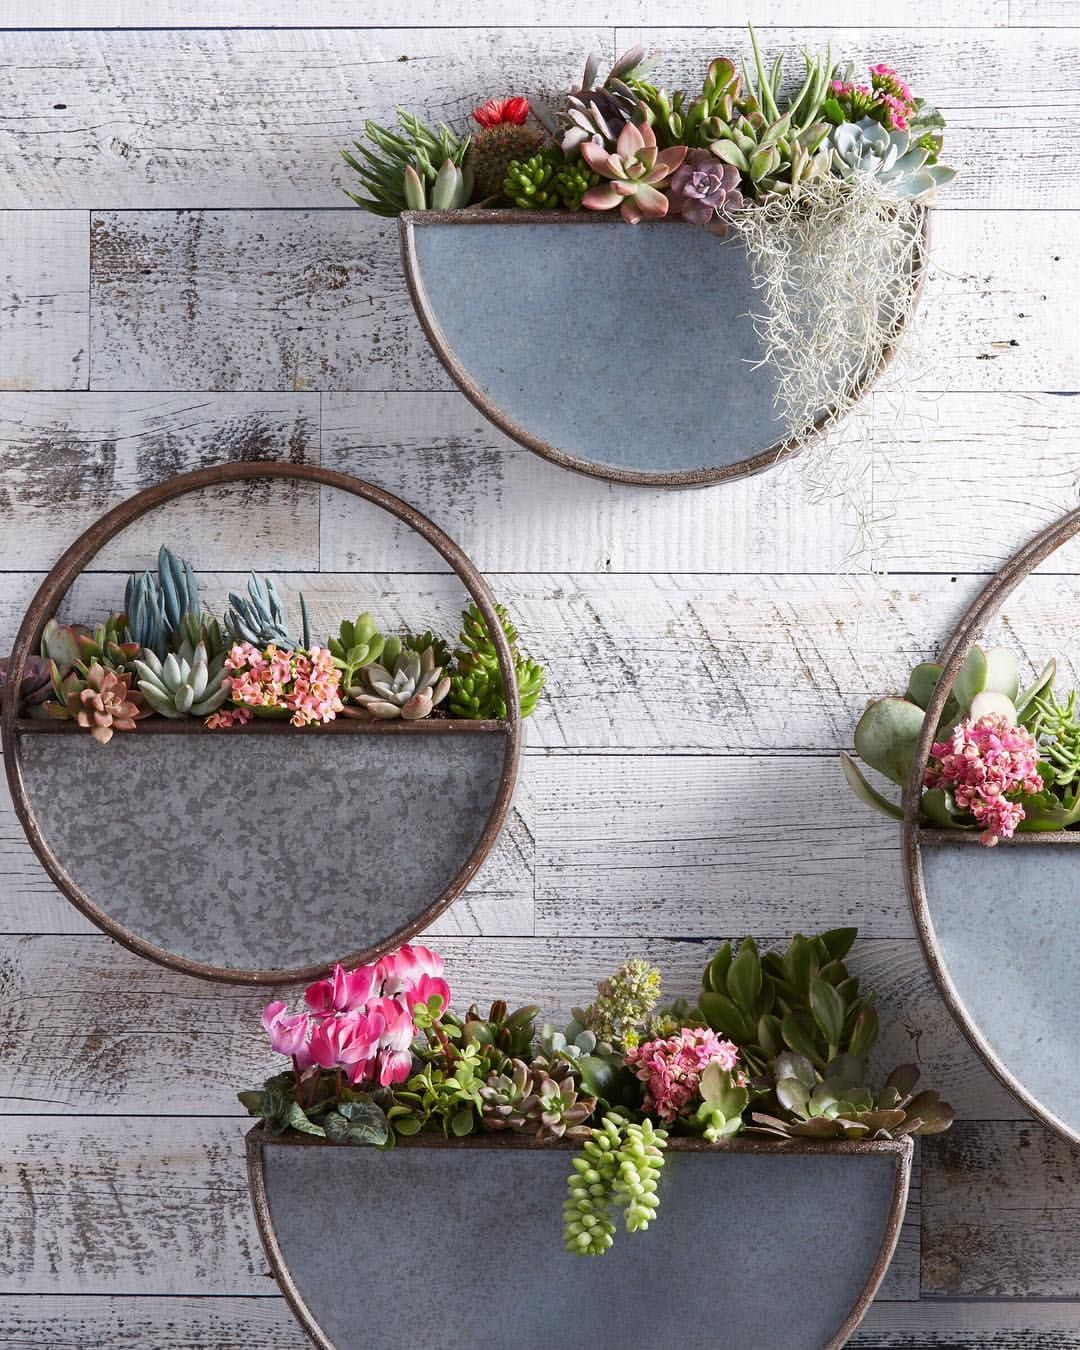 Made Of Galvanized Metal For A Rustic Look Our